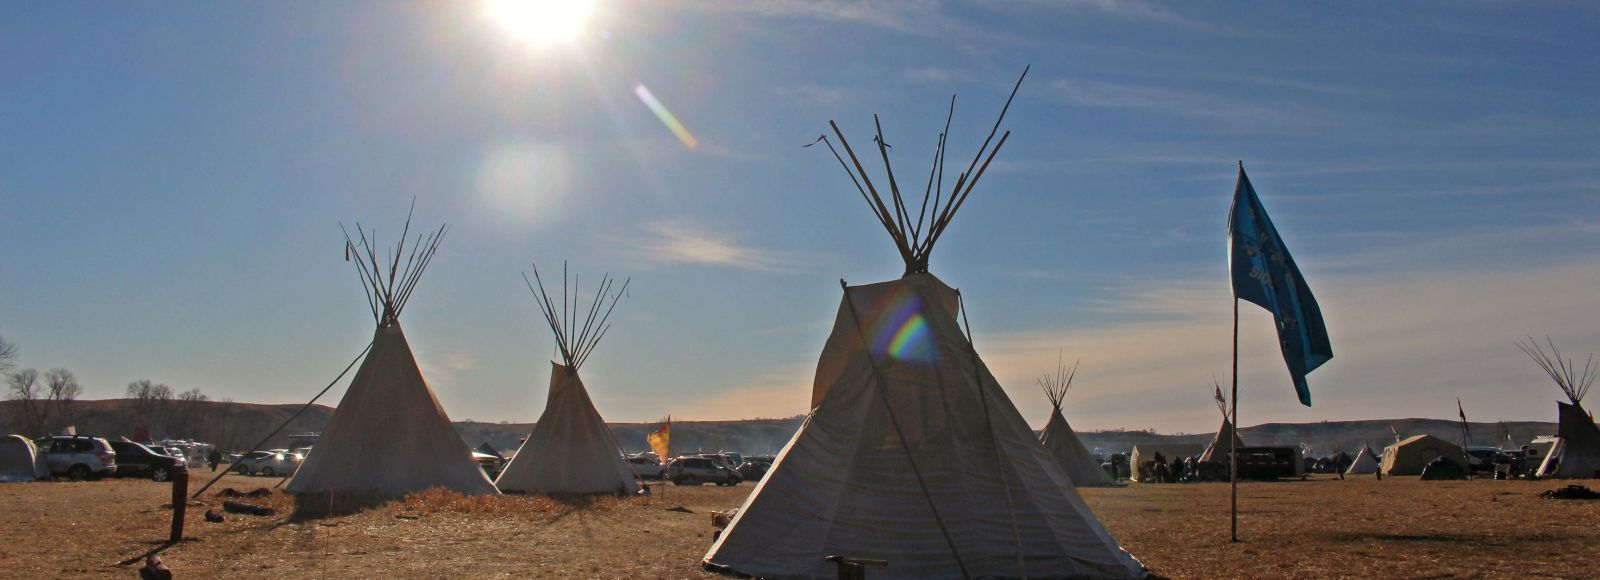 several tipis stand in the sunshine on the plains with blue sky